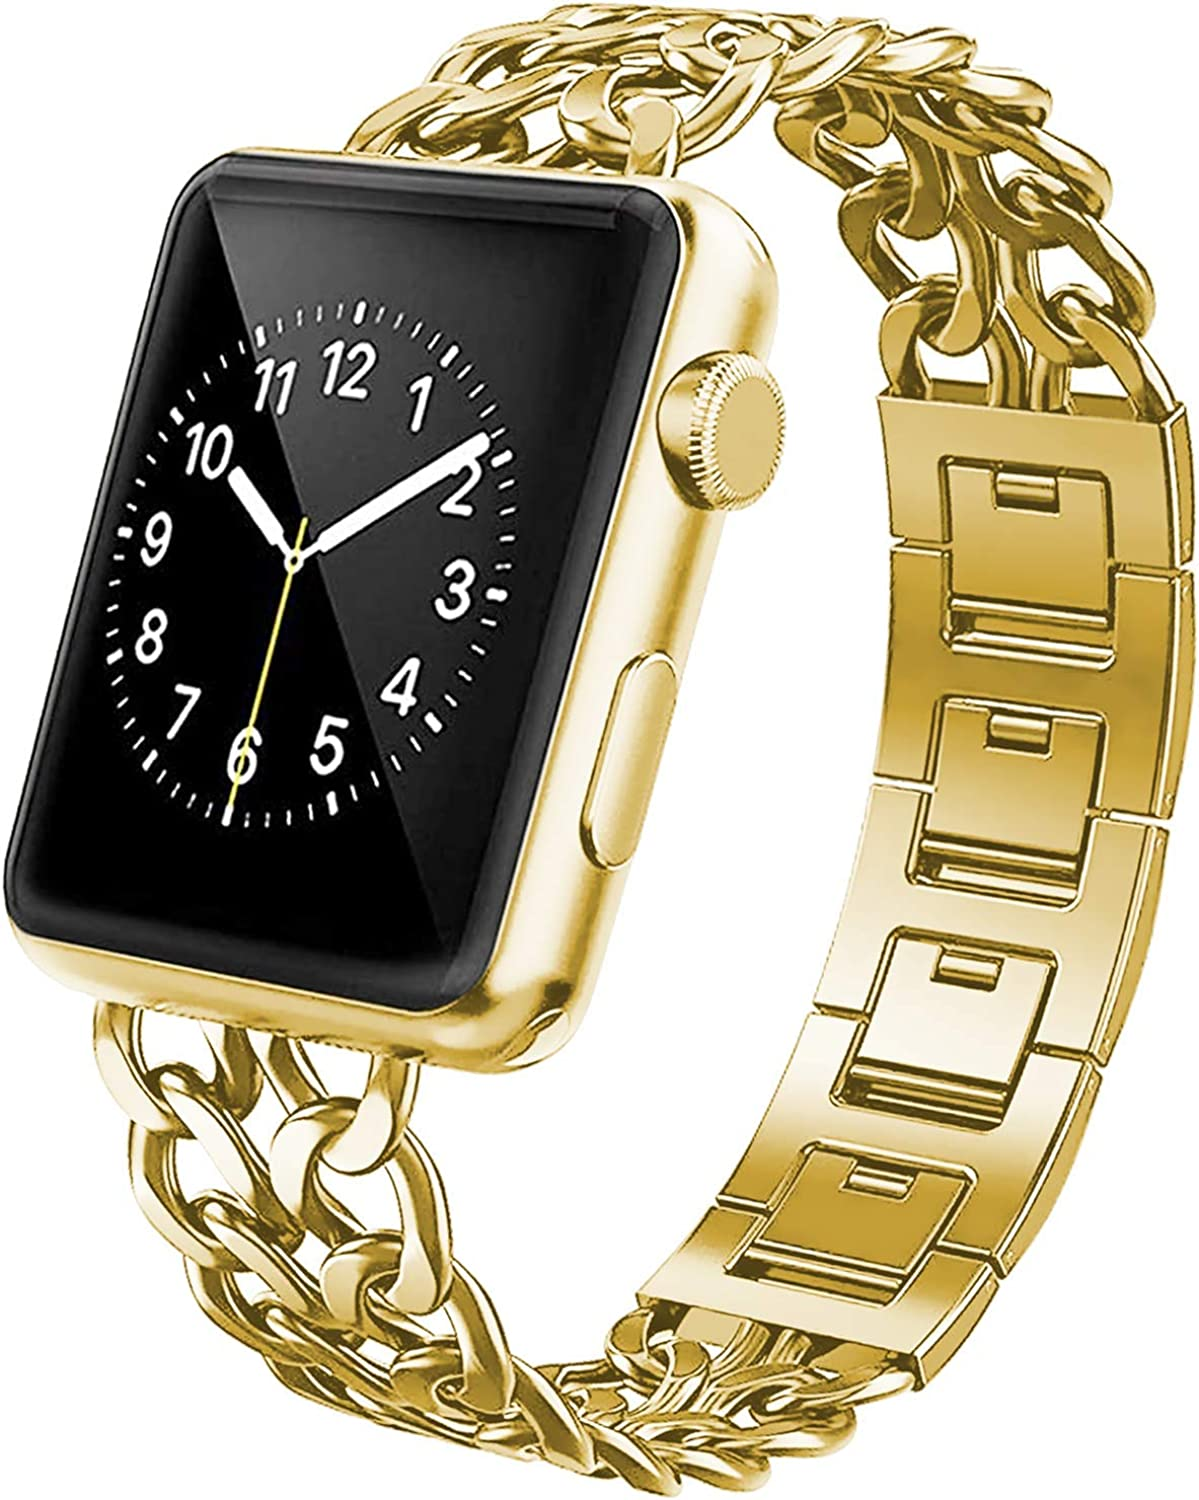 YEAPREE Chain Metal Bands Compatible with Apple Watch Band 44mm 42mm 40mm 38mm for Women/Man, Stainless Steel Metal Chains Strap Wristband for iWatch Series 6/5/4/3/2/1/SE